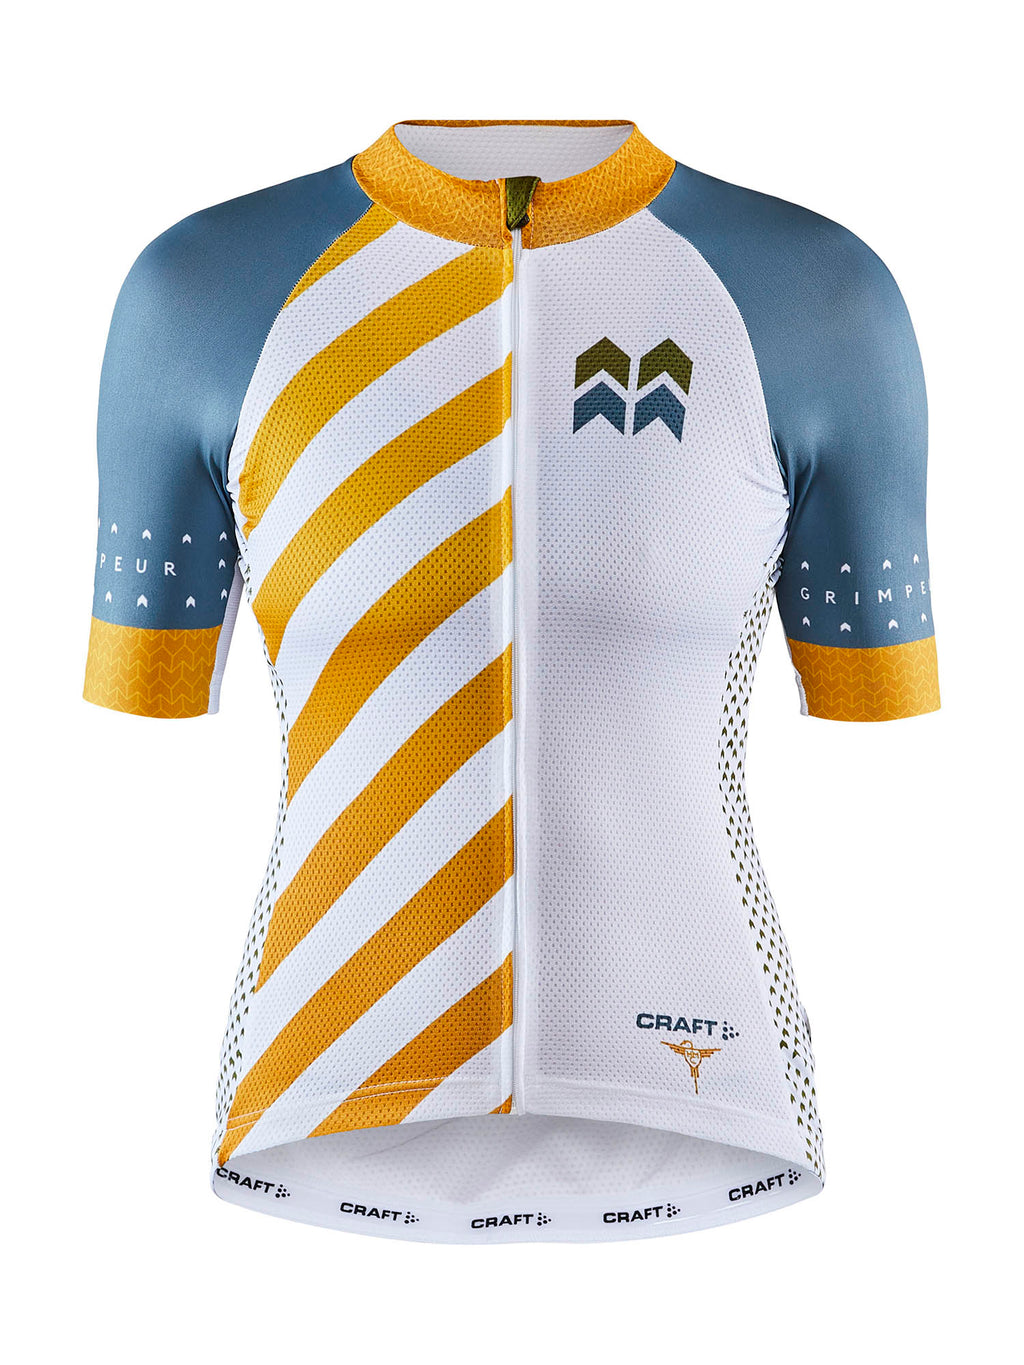 The Handmade Cyclist x Craft Sportswear • Women's 'Grimpeur' Jersey